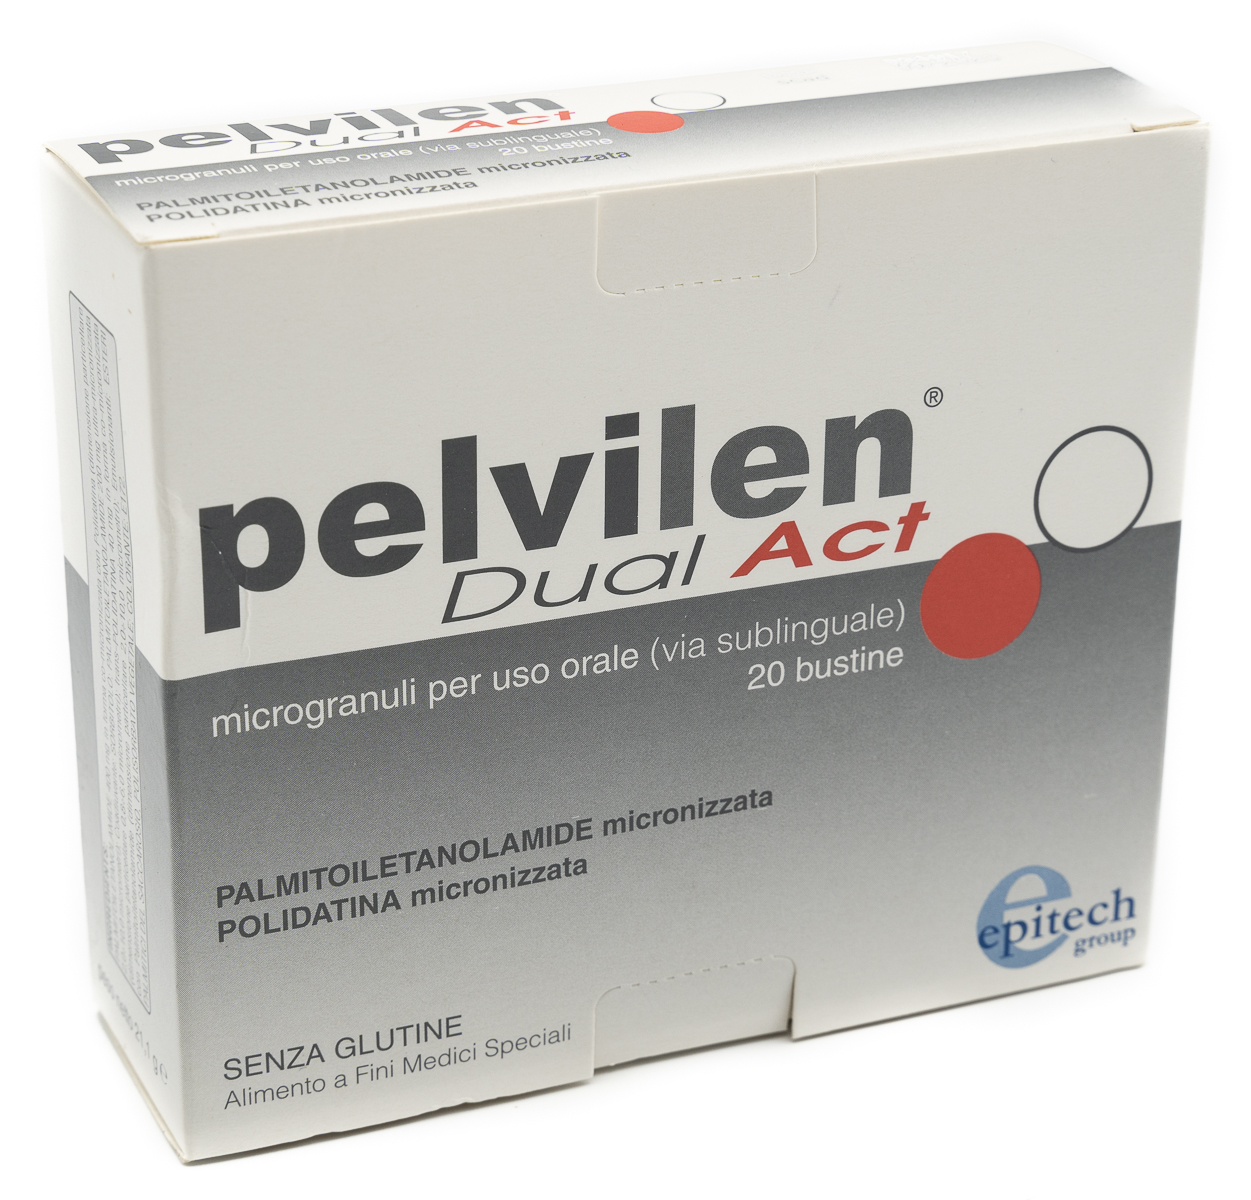 EPITECH GROUP SpA Pelvilen Dual Act 20bst